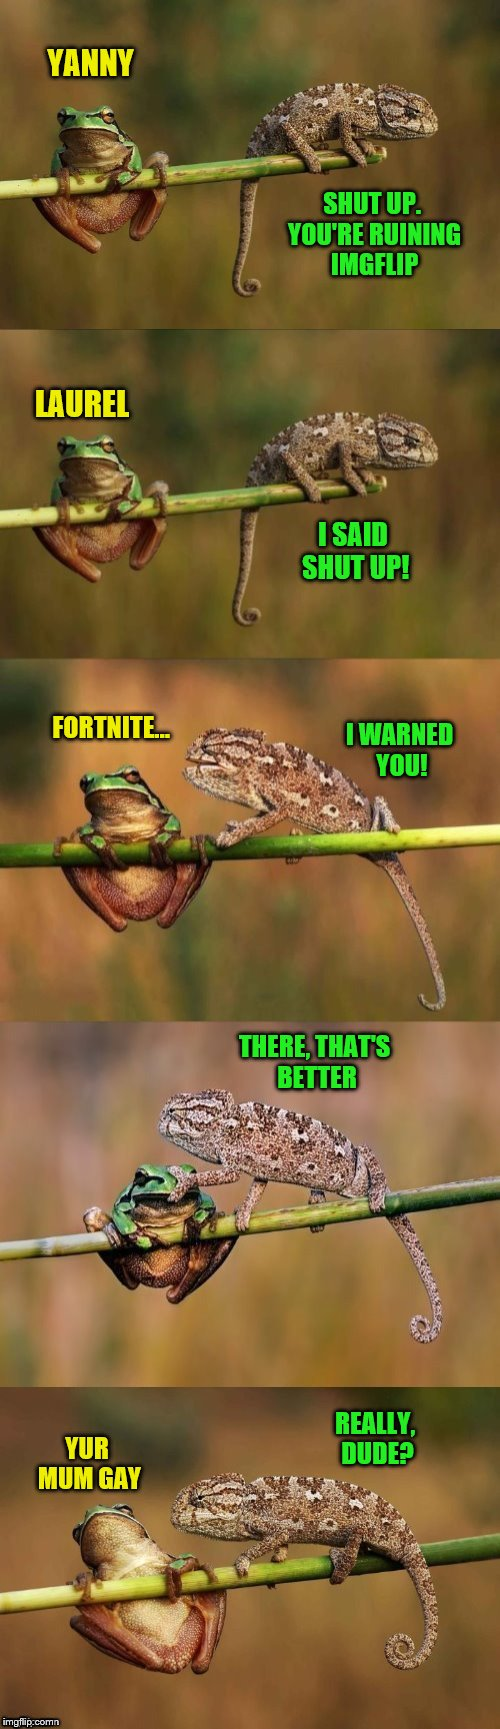 Frog Week, June 4-10, a JBmemegeek & giveuahint event! (Thanks to DashHopes for the template)  | YANNY LAUREL FORTNITE... YUR MUM GAY SHUT UP. YOU'RE RUINING IMGFLIP I SAID SHUT UP! I WARNED YOU! REALLY, DUDE? THERE, THAT'S BETTER | image tagged in frog and lizard,jbmemegeek,giveuahint,frog week,frogs,fortnite | made w/ Imgflip meme maker